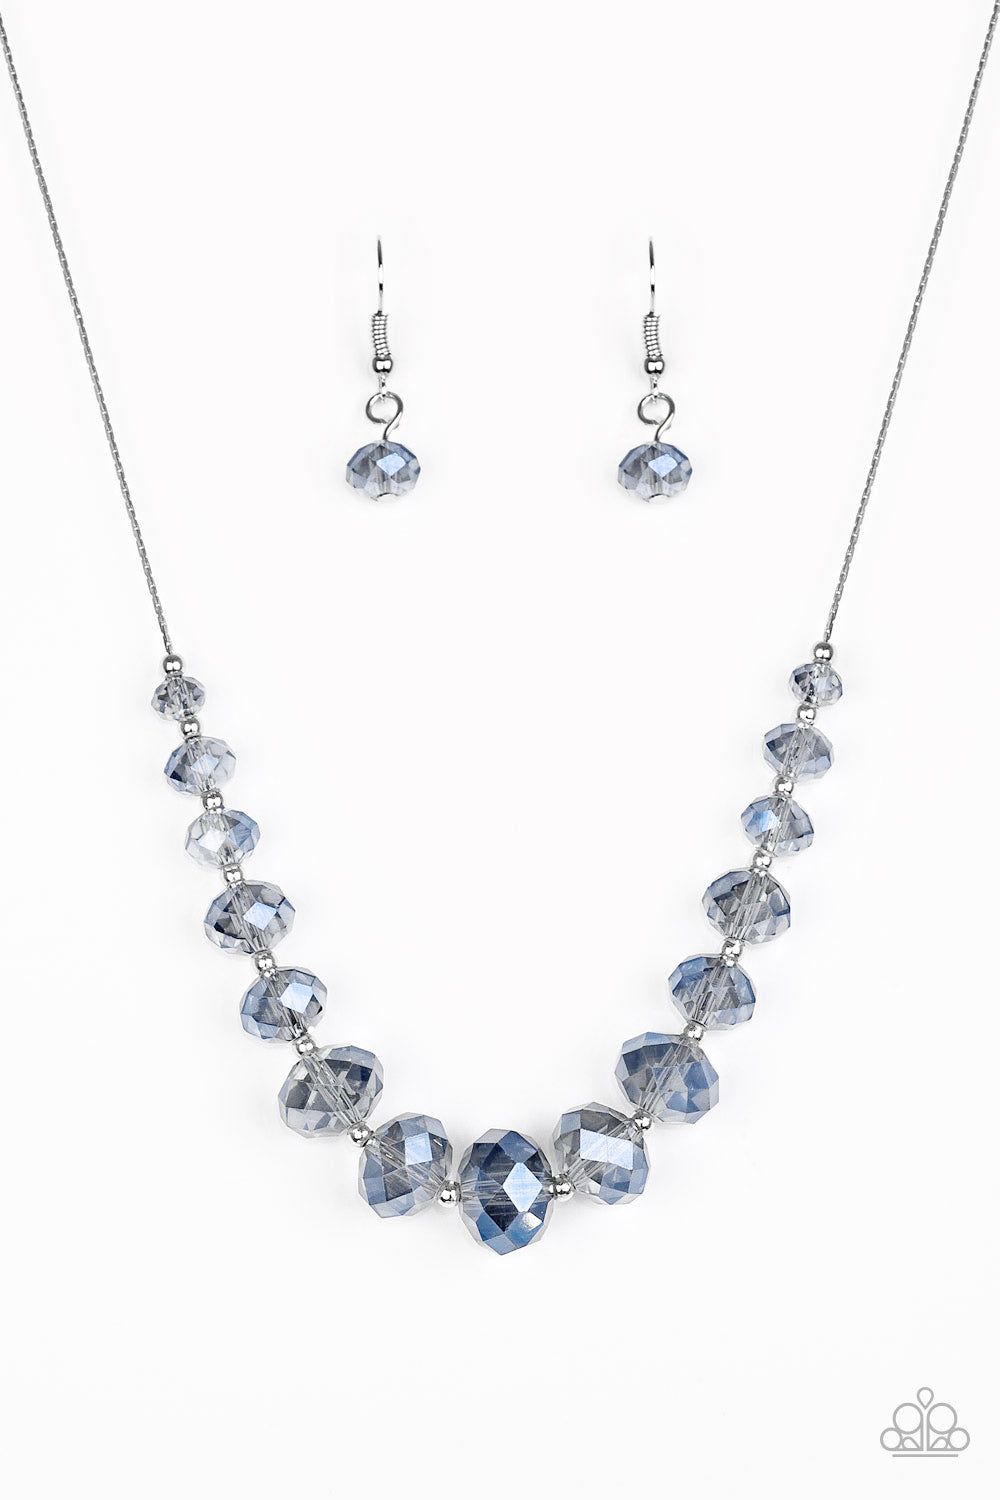 Paparazzi Crystal Carriages Necklace-Blue